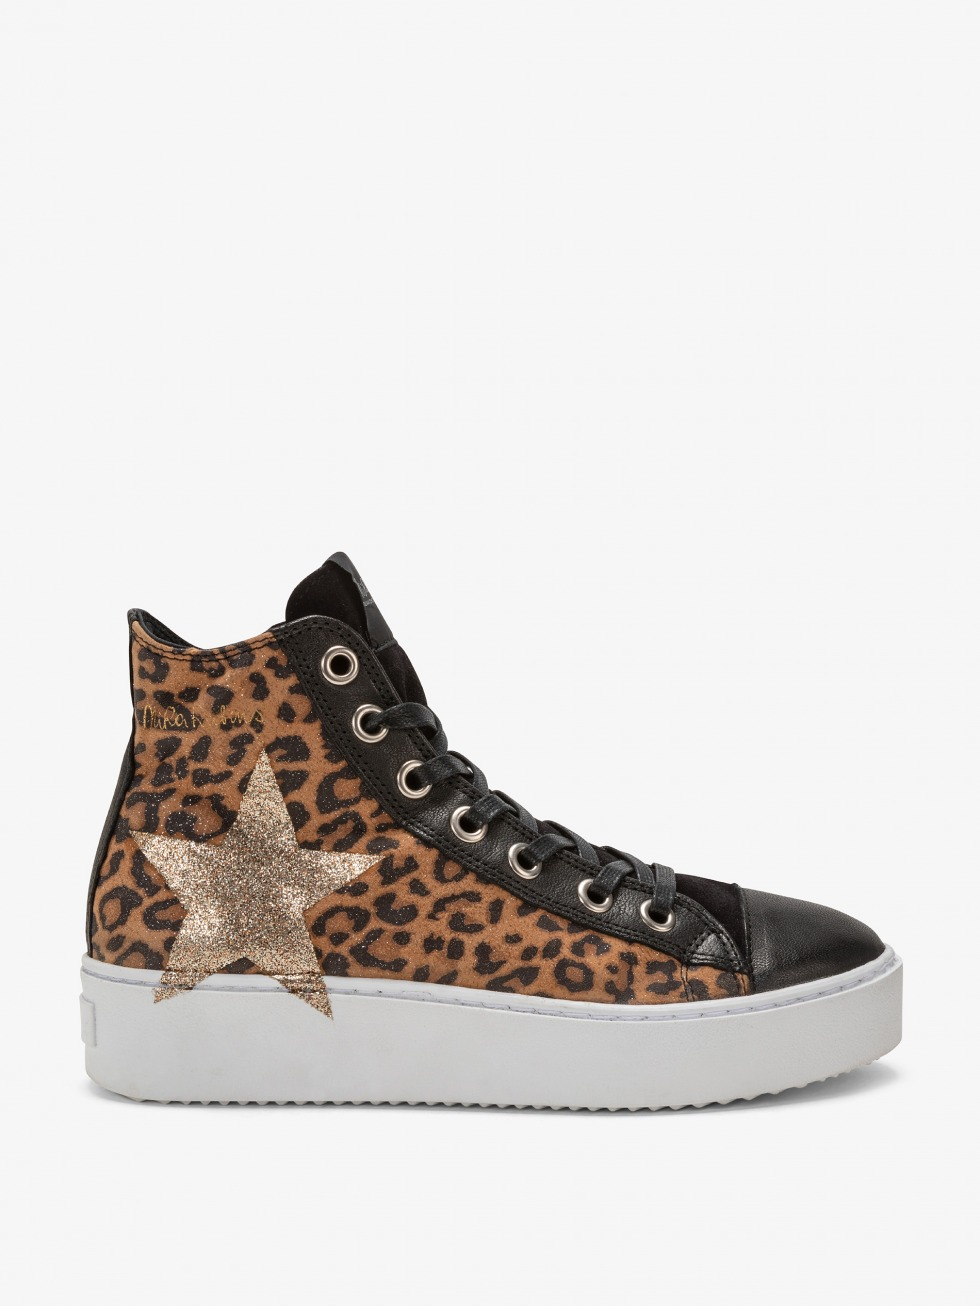 Long Island Sneakers - Glitter Leo Star